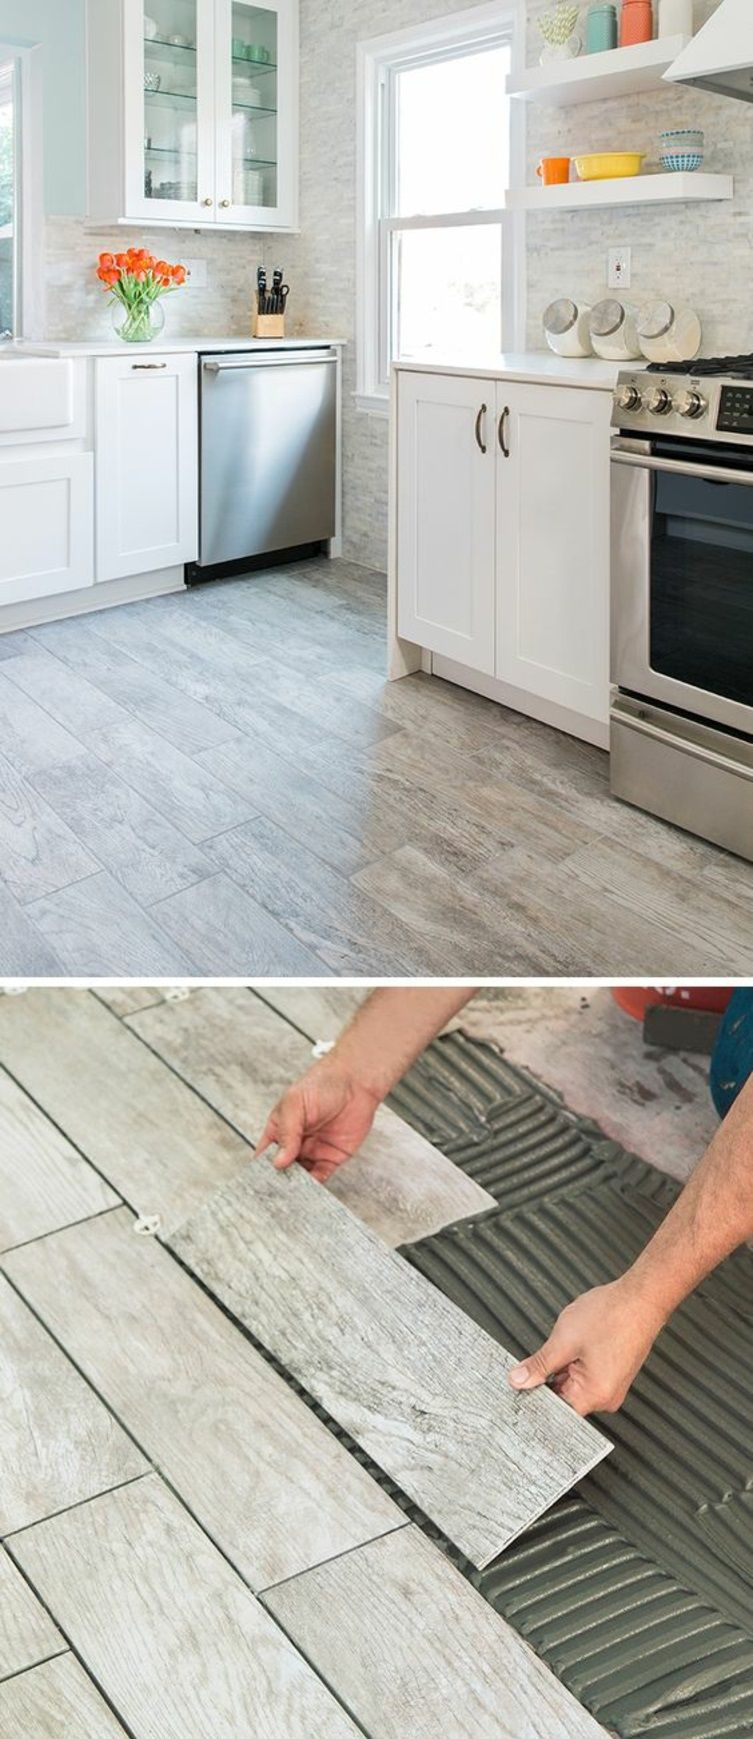 Küche Laminat Verlegen Pin By New Models On Hair In 2018 Pinterest Kitchen Flooring